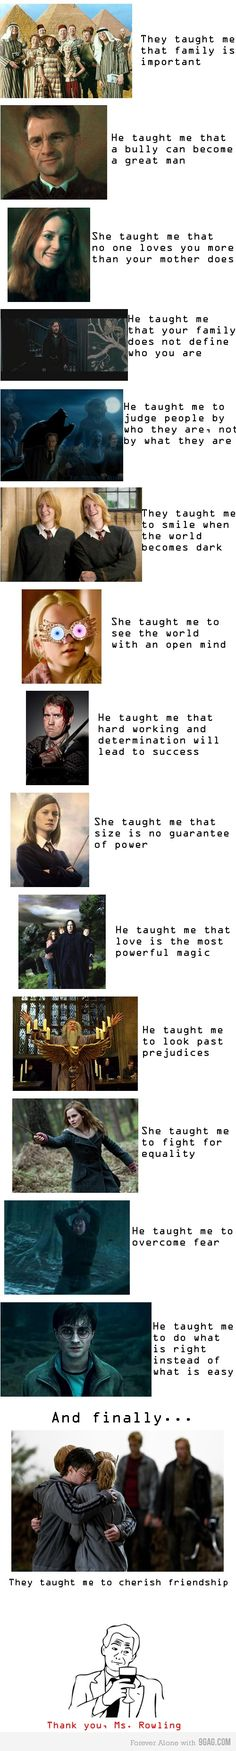 Not necessarily funny, but so true. Thank you Ms. Rowling